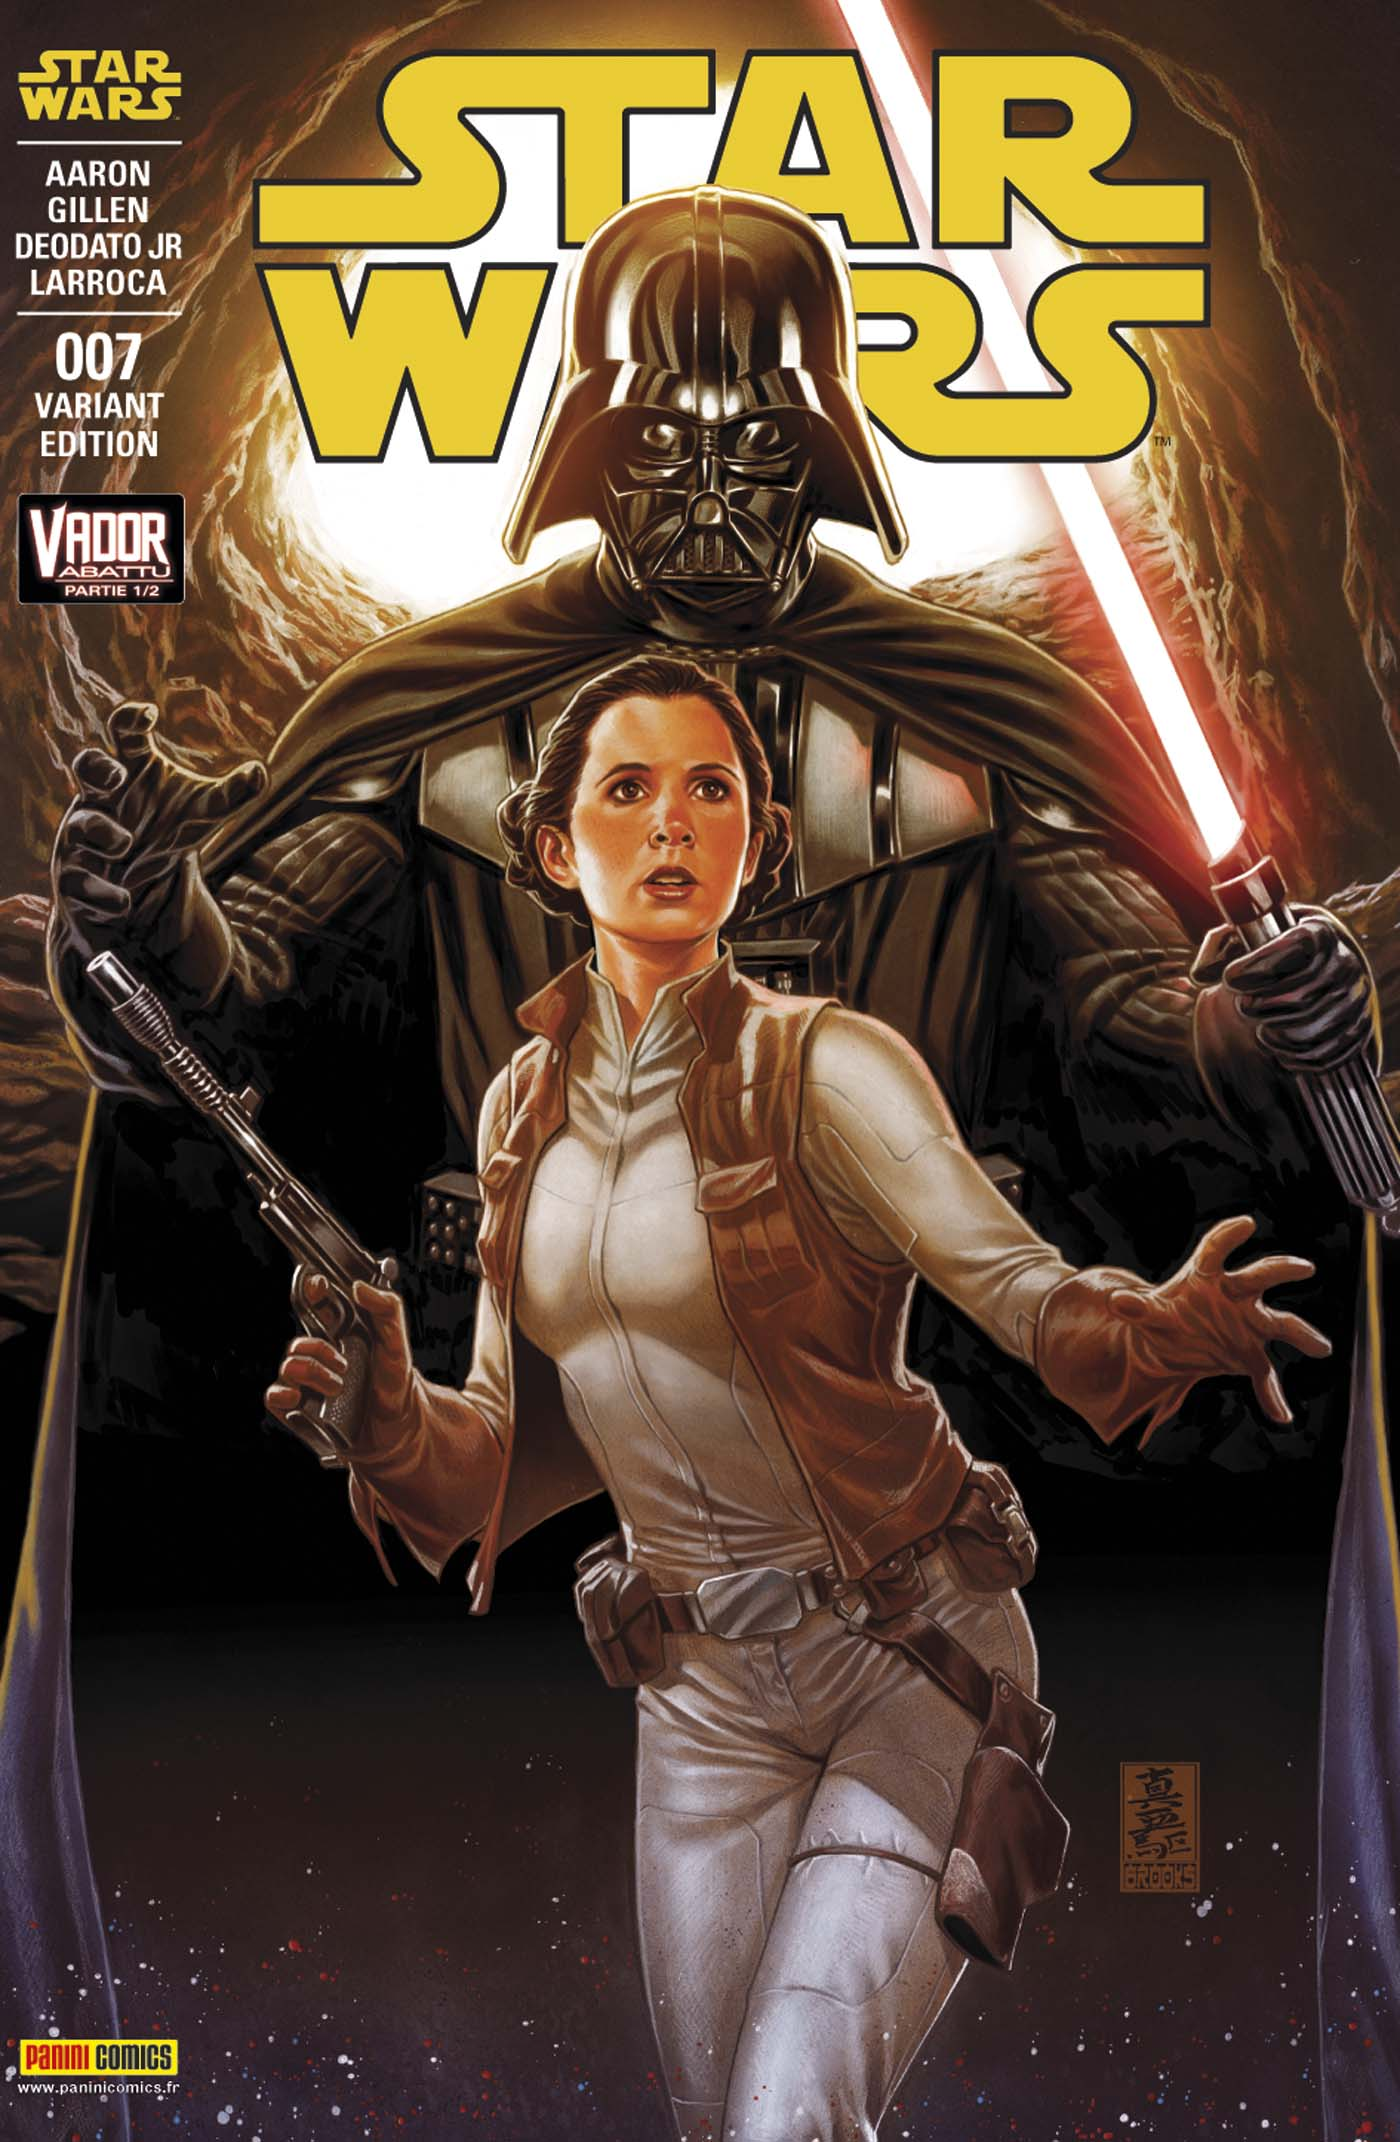 Star Wars Comics 7 - Couverture B